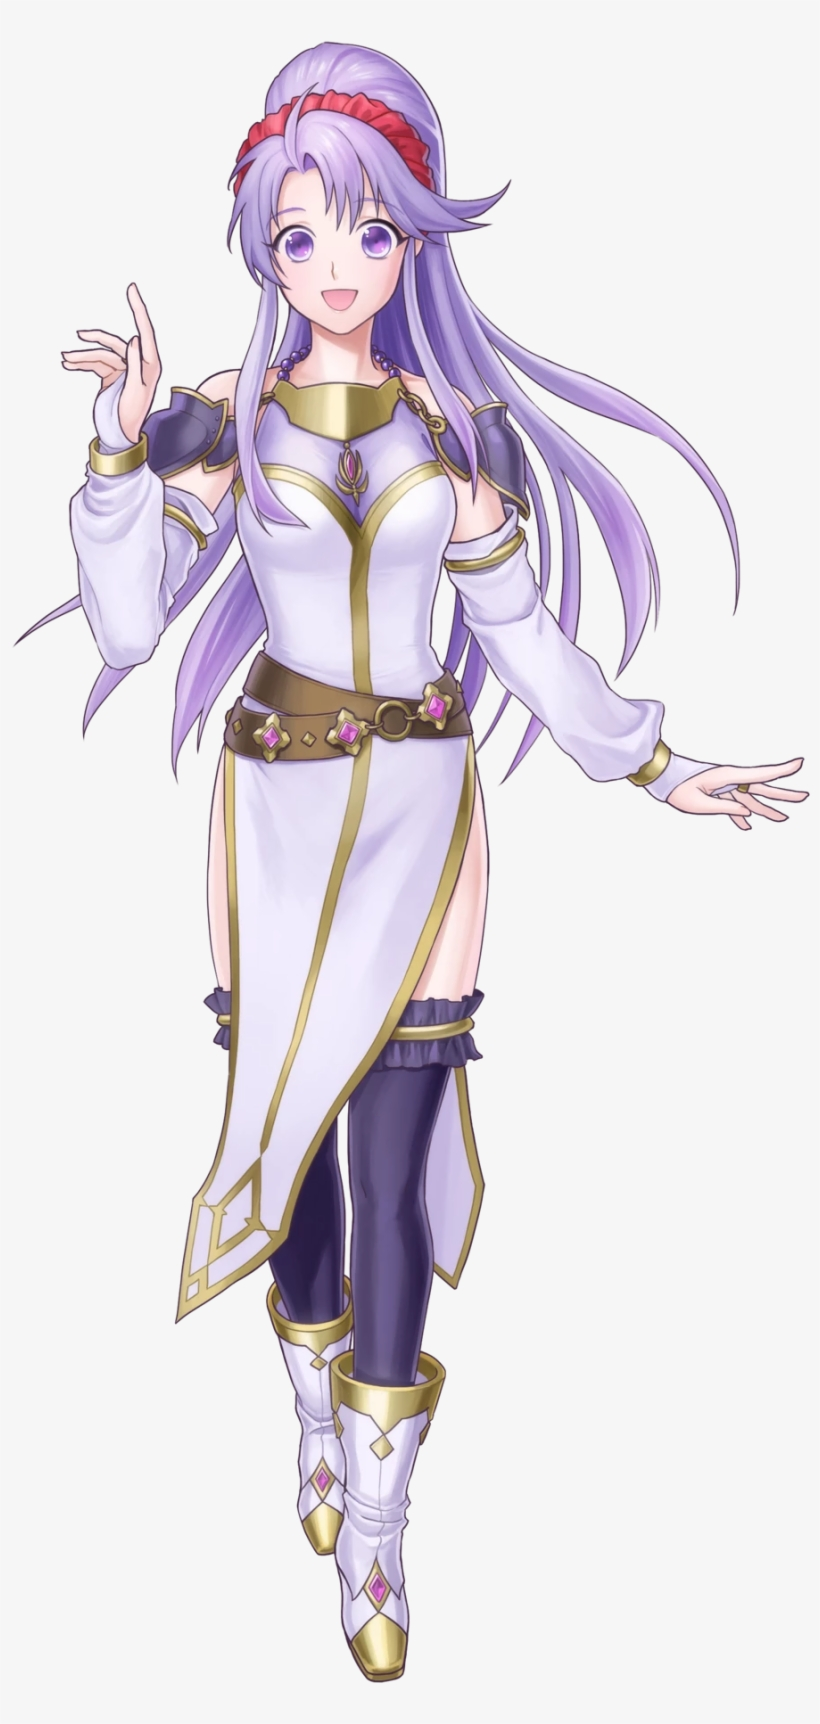 anime fantasy characters fire emblem characters, fantasy characters, anime characters